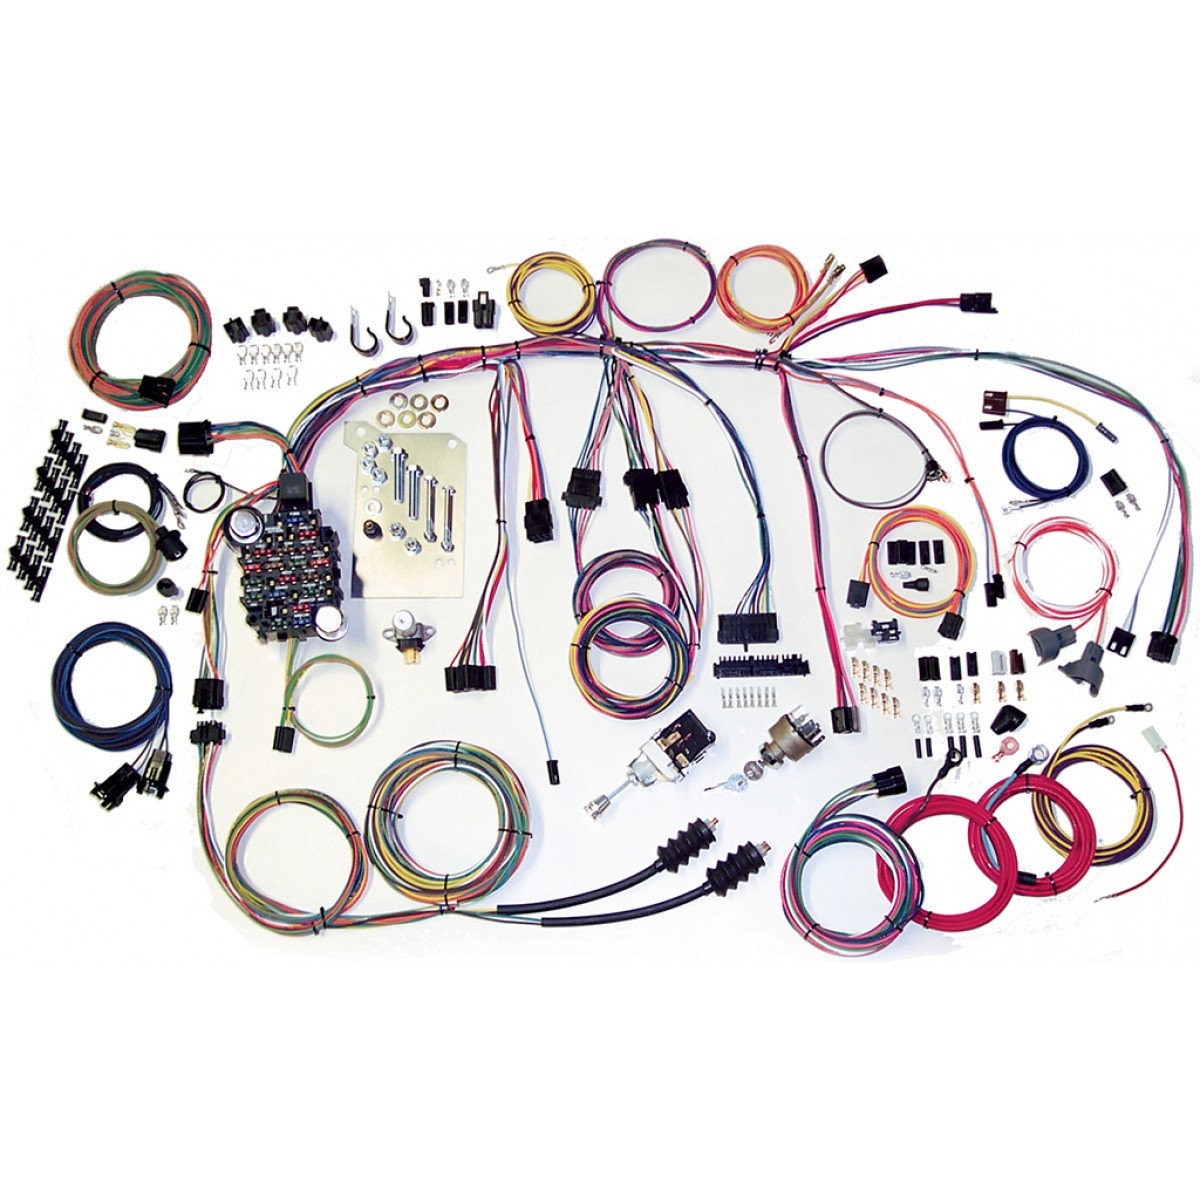 hight resolution of chevy c10 wiring harness complete wiring harness kit 1960 1966 chevy wiring schematics chevy truck wiring harness